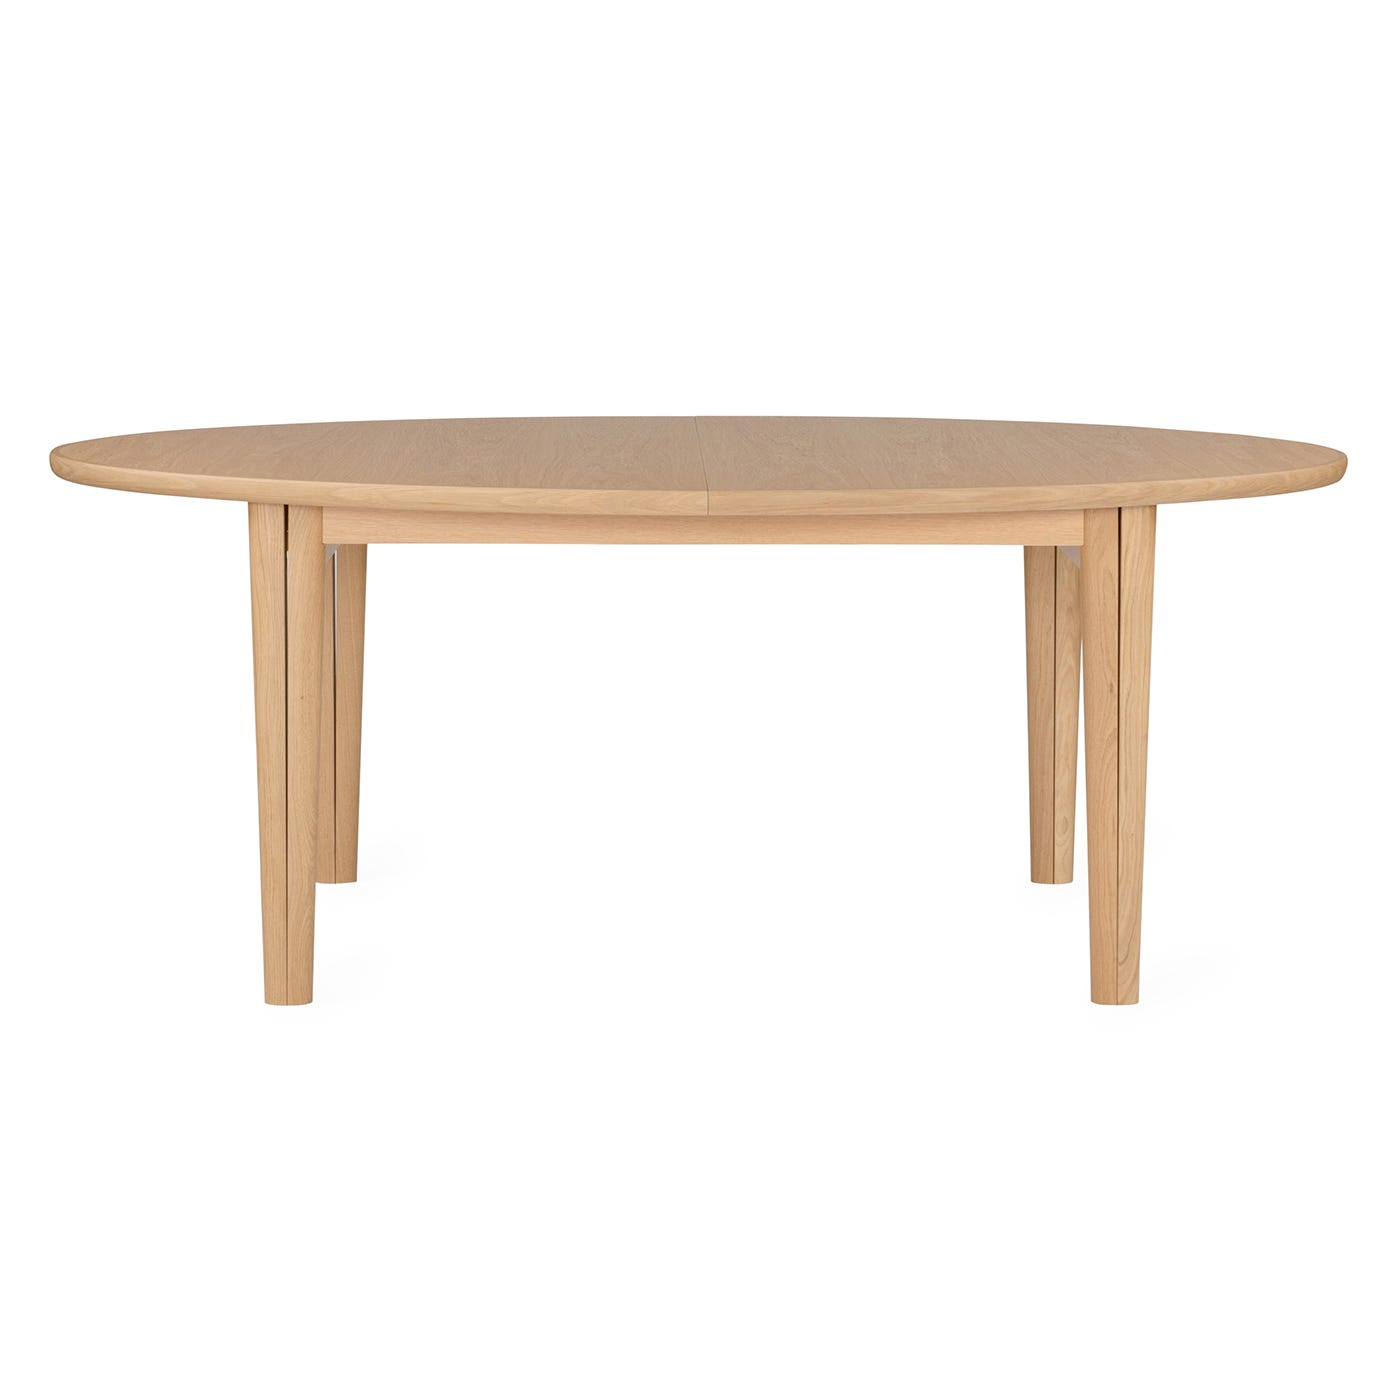 Ellipse Extending Dining Table 6 - 10 Seater